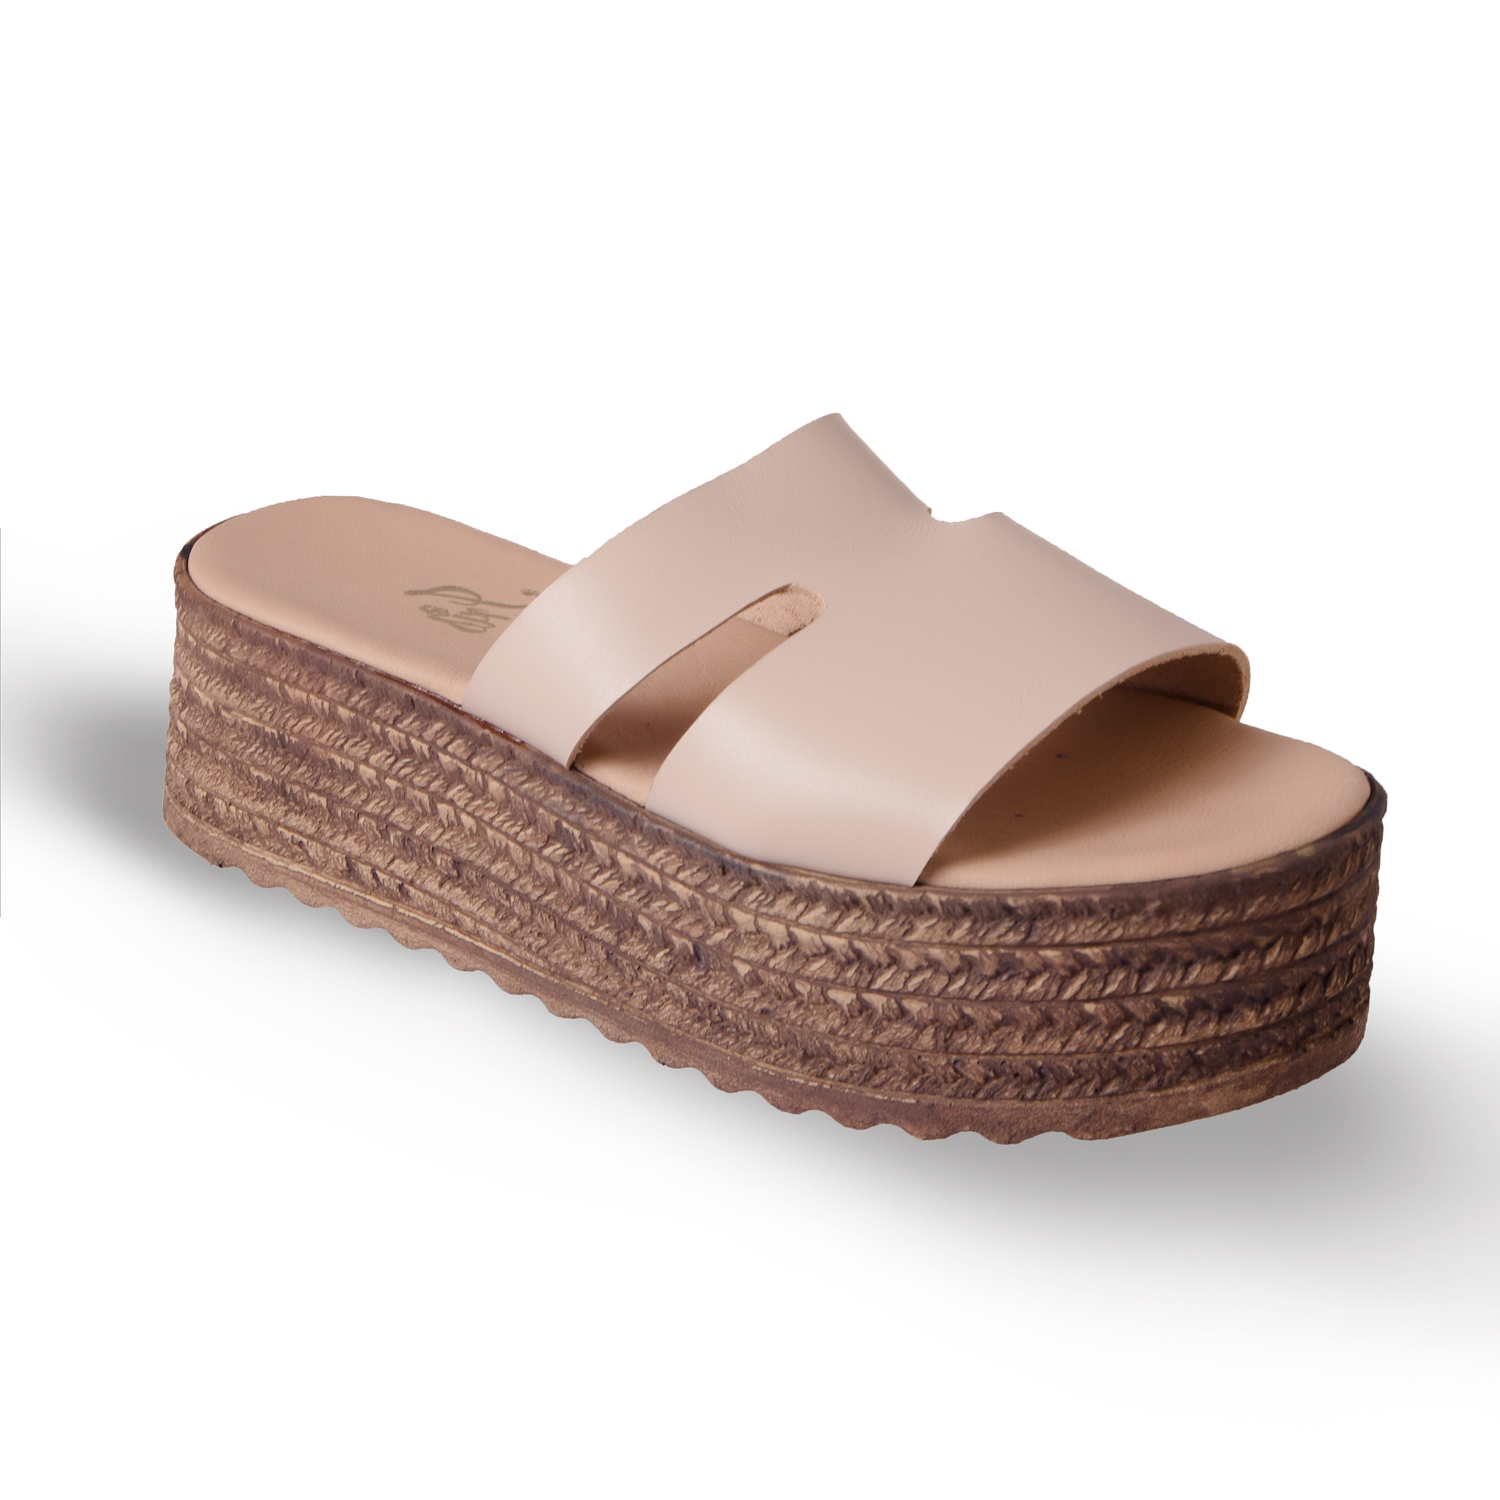 Women's leather  sandals from 100% genuine leather